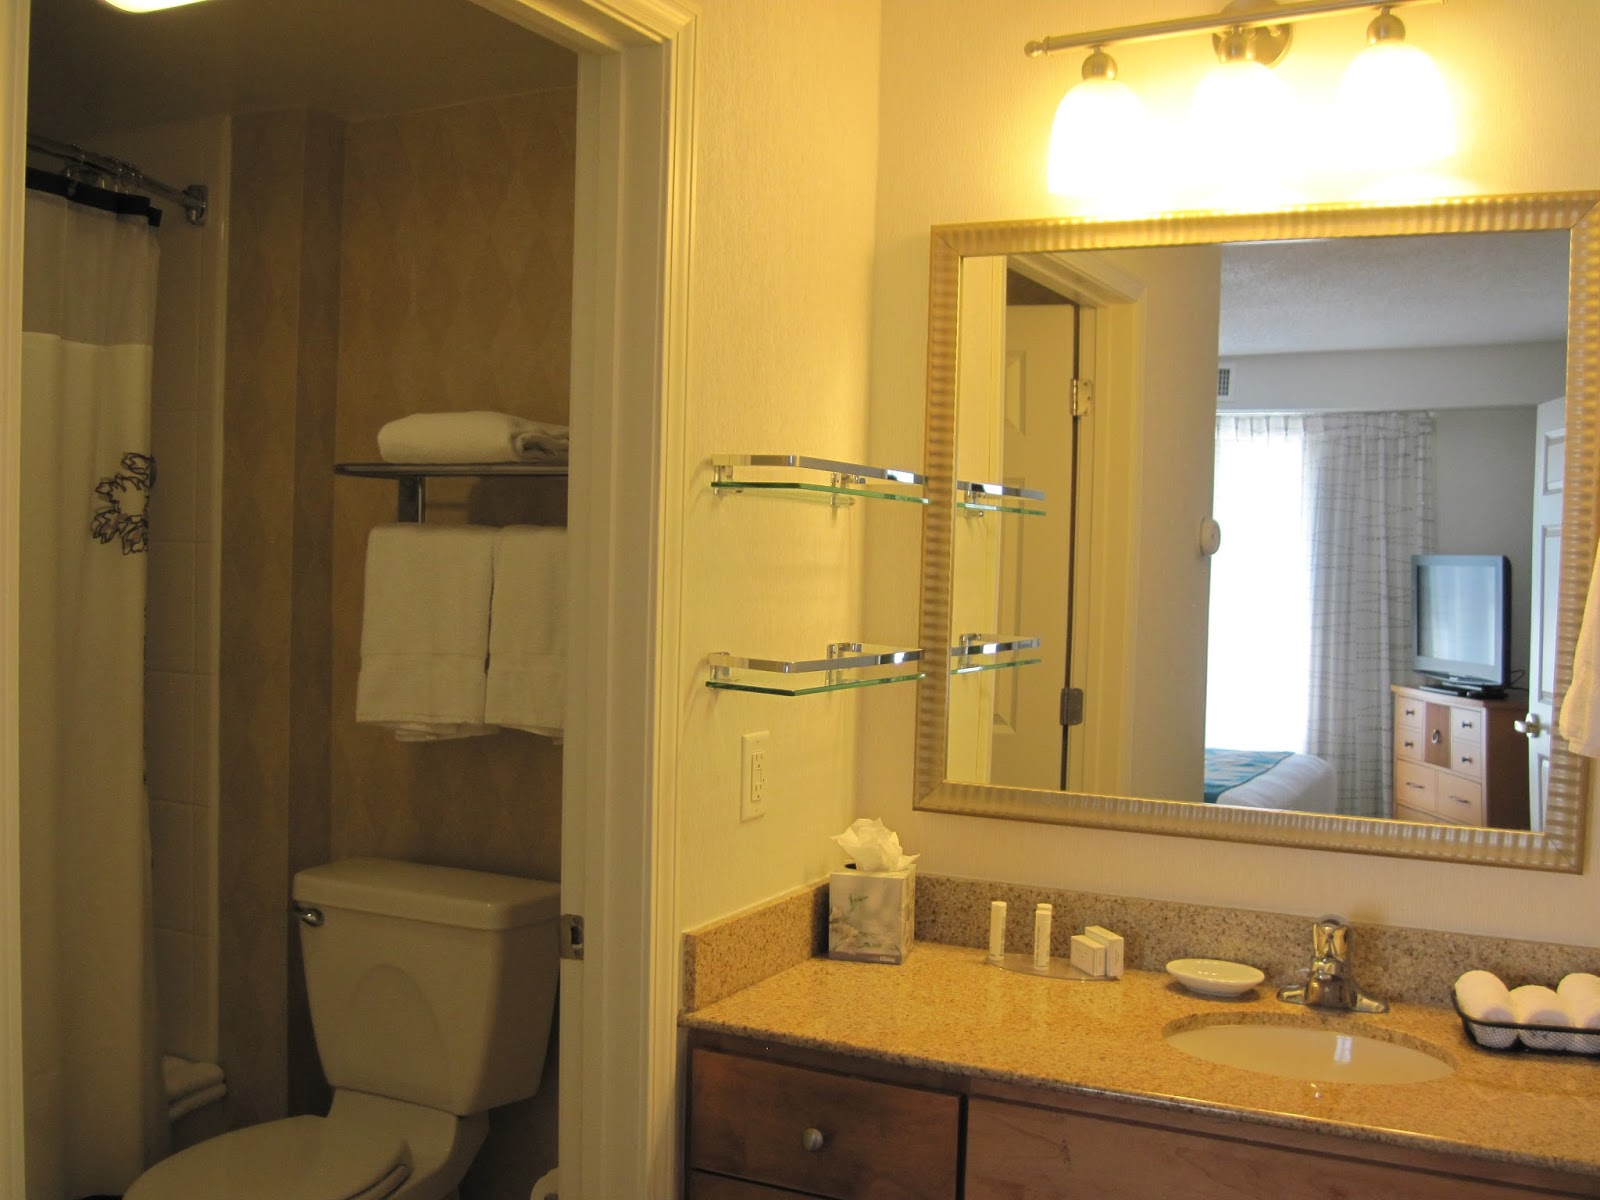 Travel Reviews & Information: Wayne, New Jersey / Residence Inn Wayne